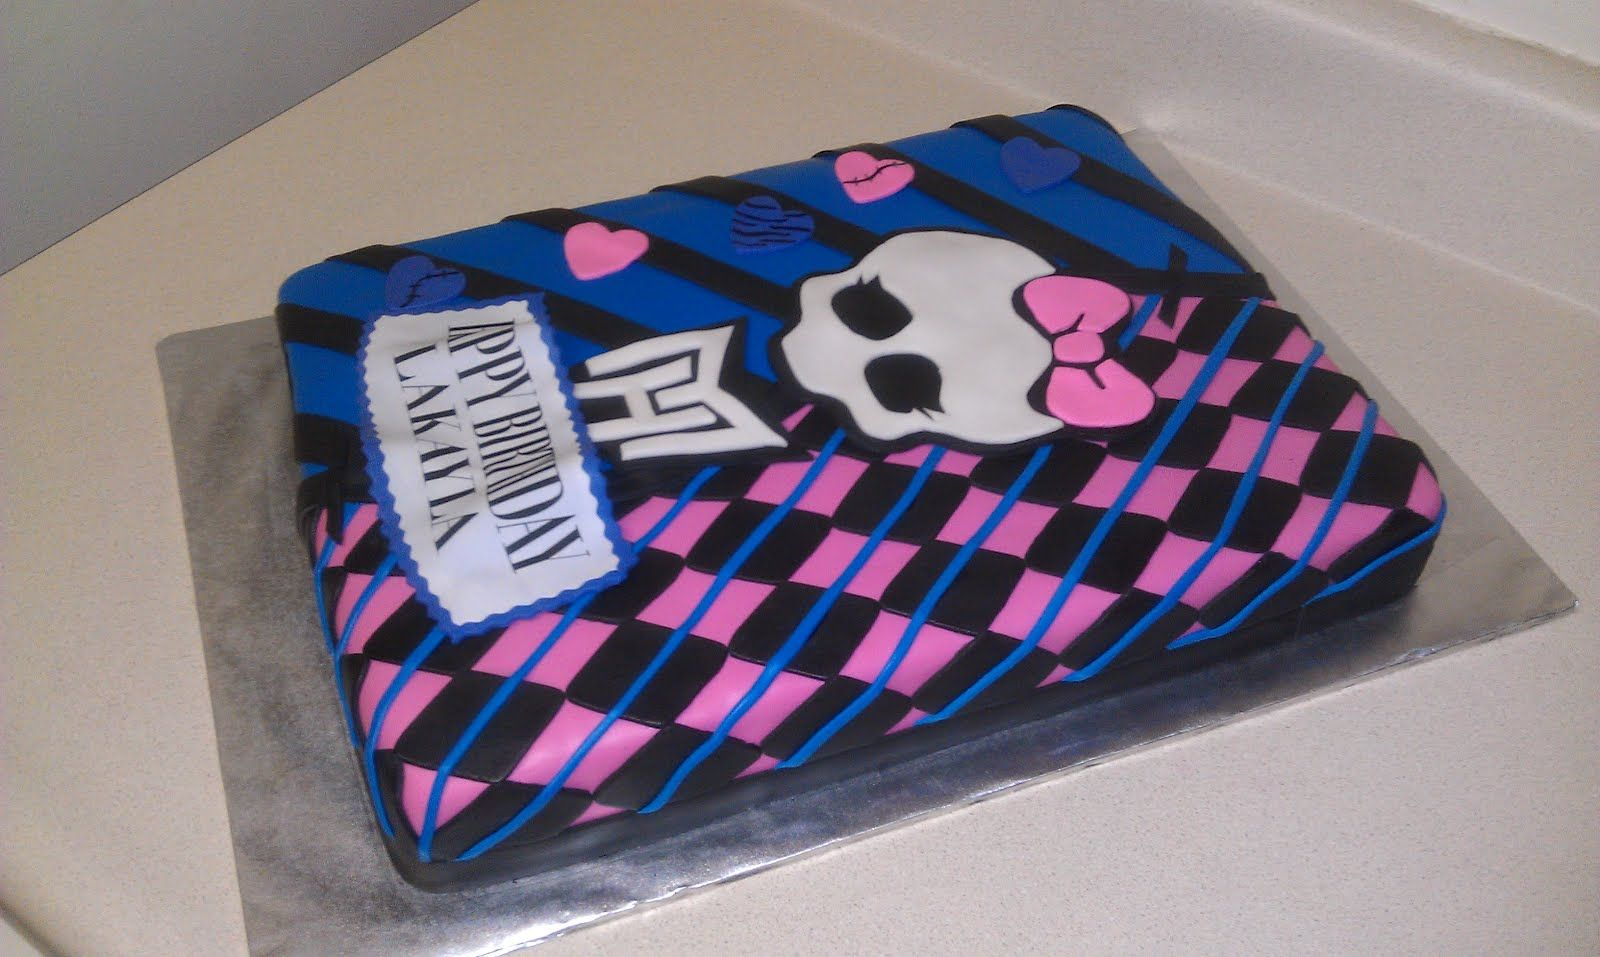 monster high cakes pictures | Monster High Cake | TLite